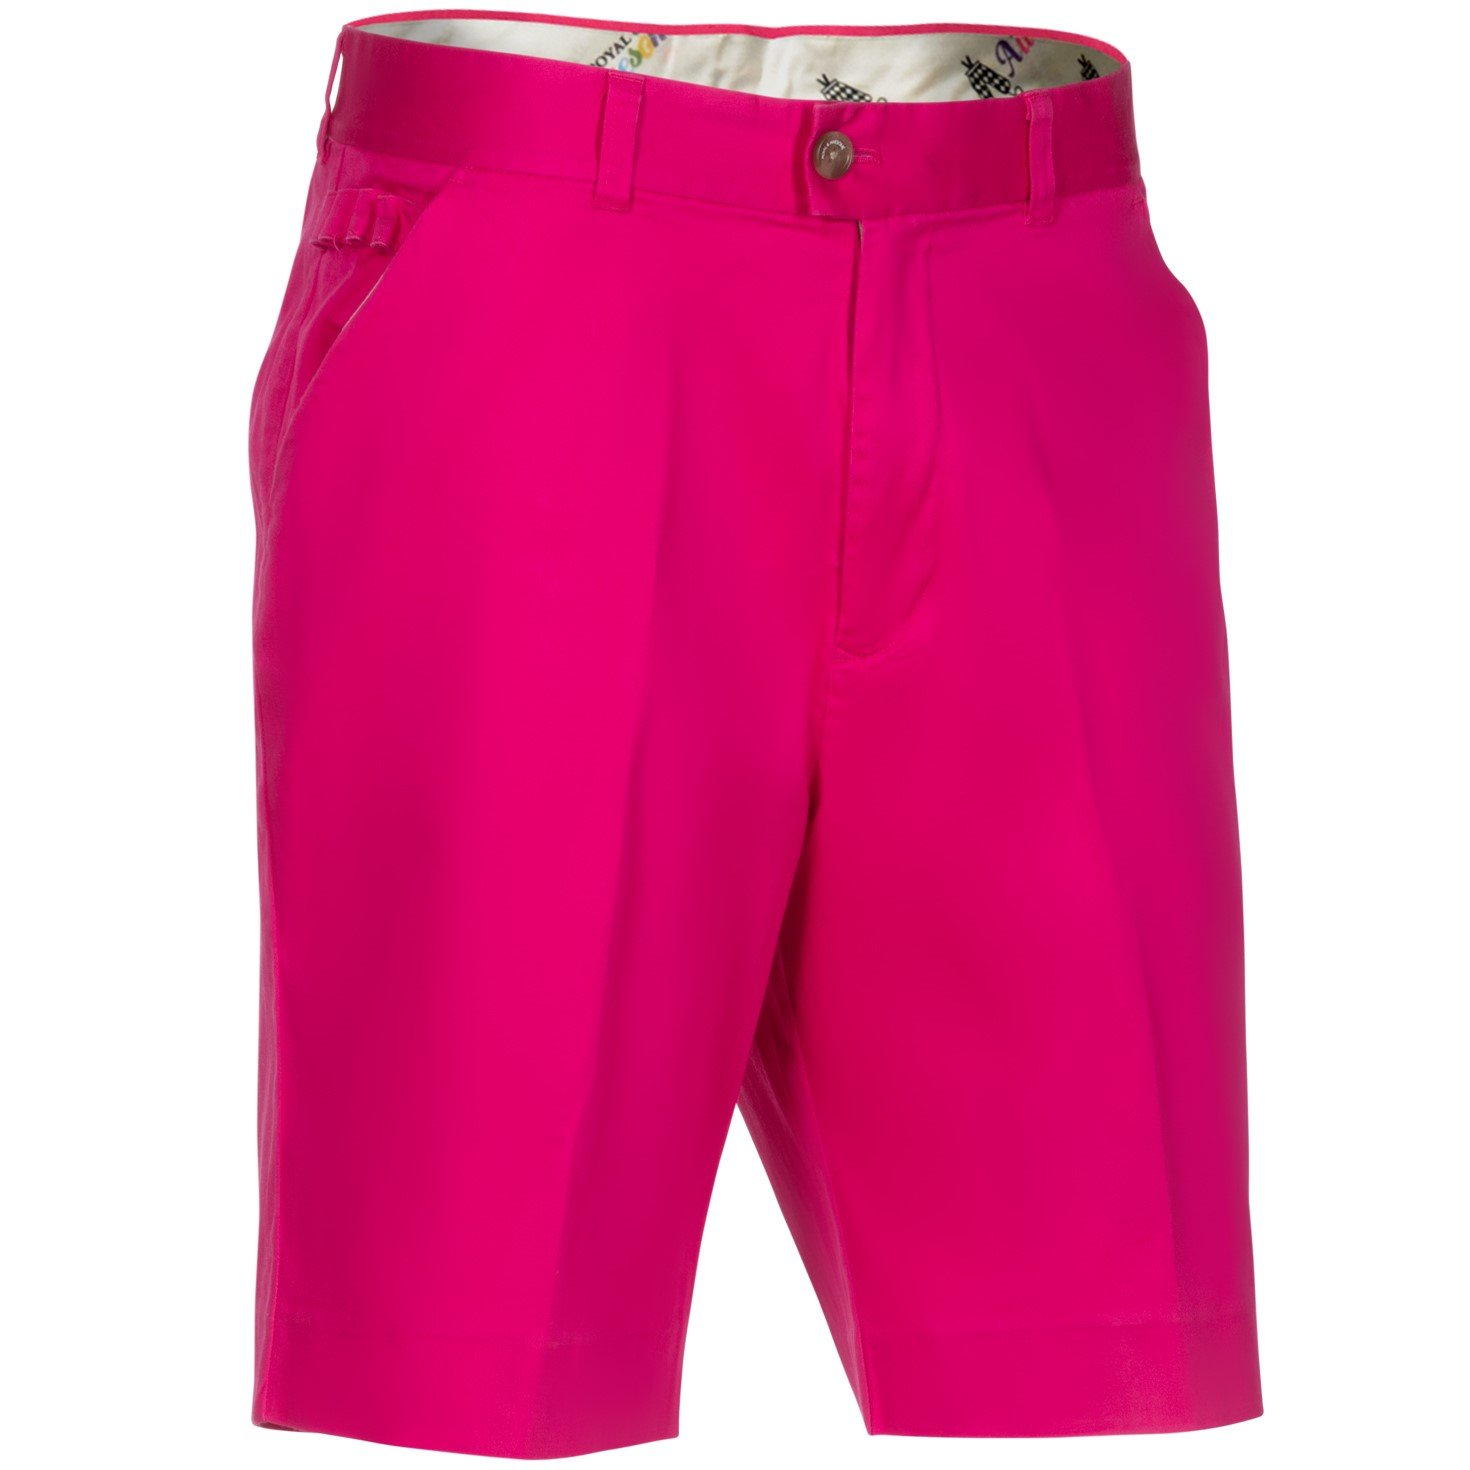 Royal & Awesome Men's Plus Size Golf Shorts, Pink Ticket, 38'' Waist-96 cm by Royal & Awesome